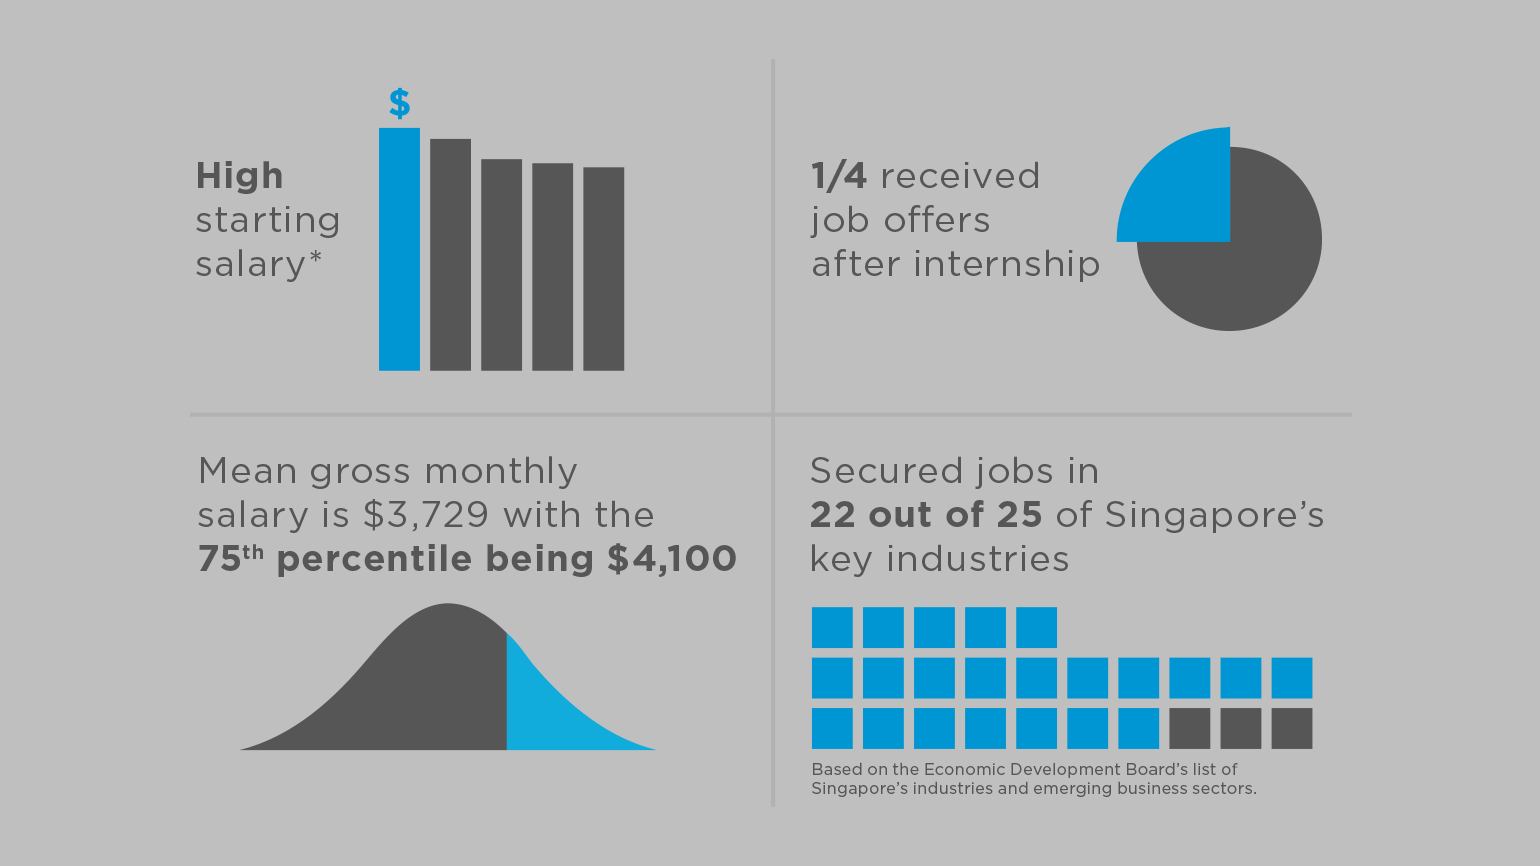 singapore university of technology and design undergraduate a high percentage found themselves rewarding jobs in singapore s key industries such as aviation and aerospace engineering